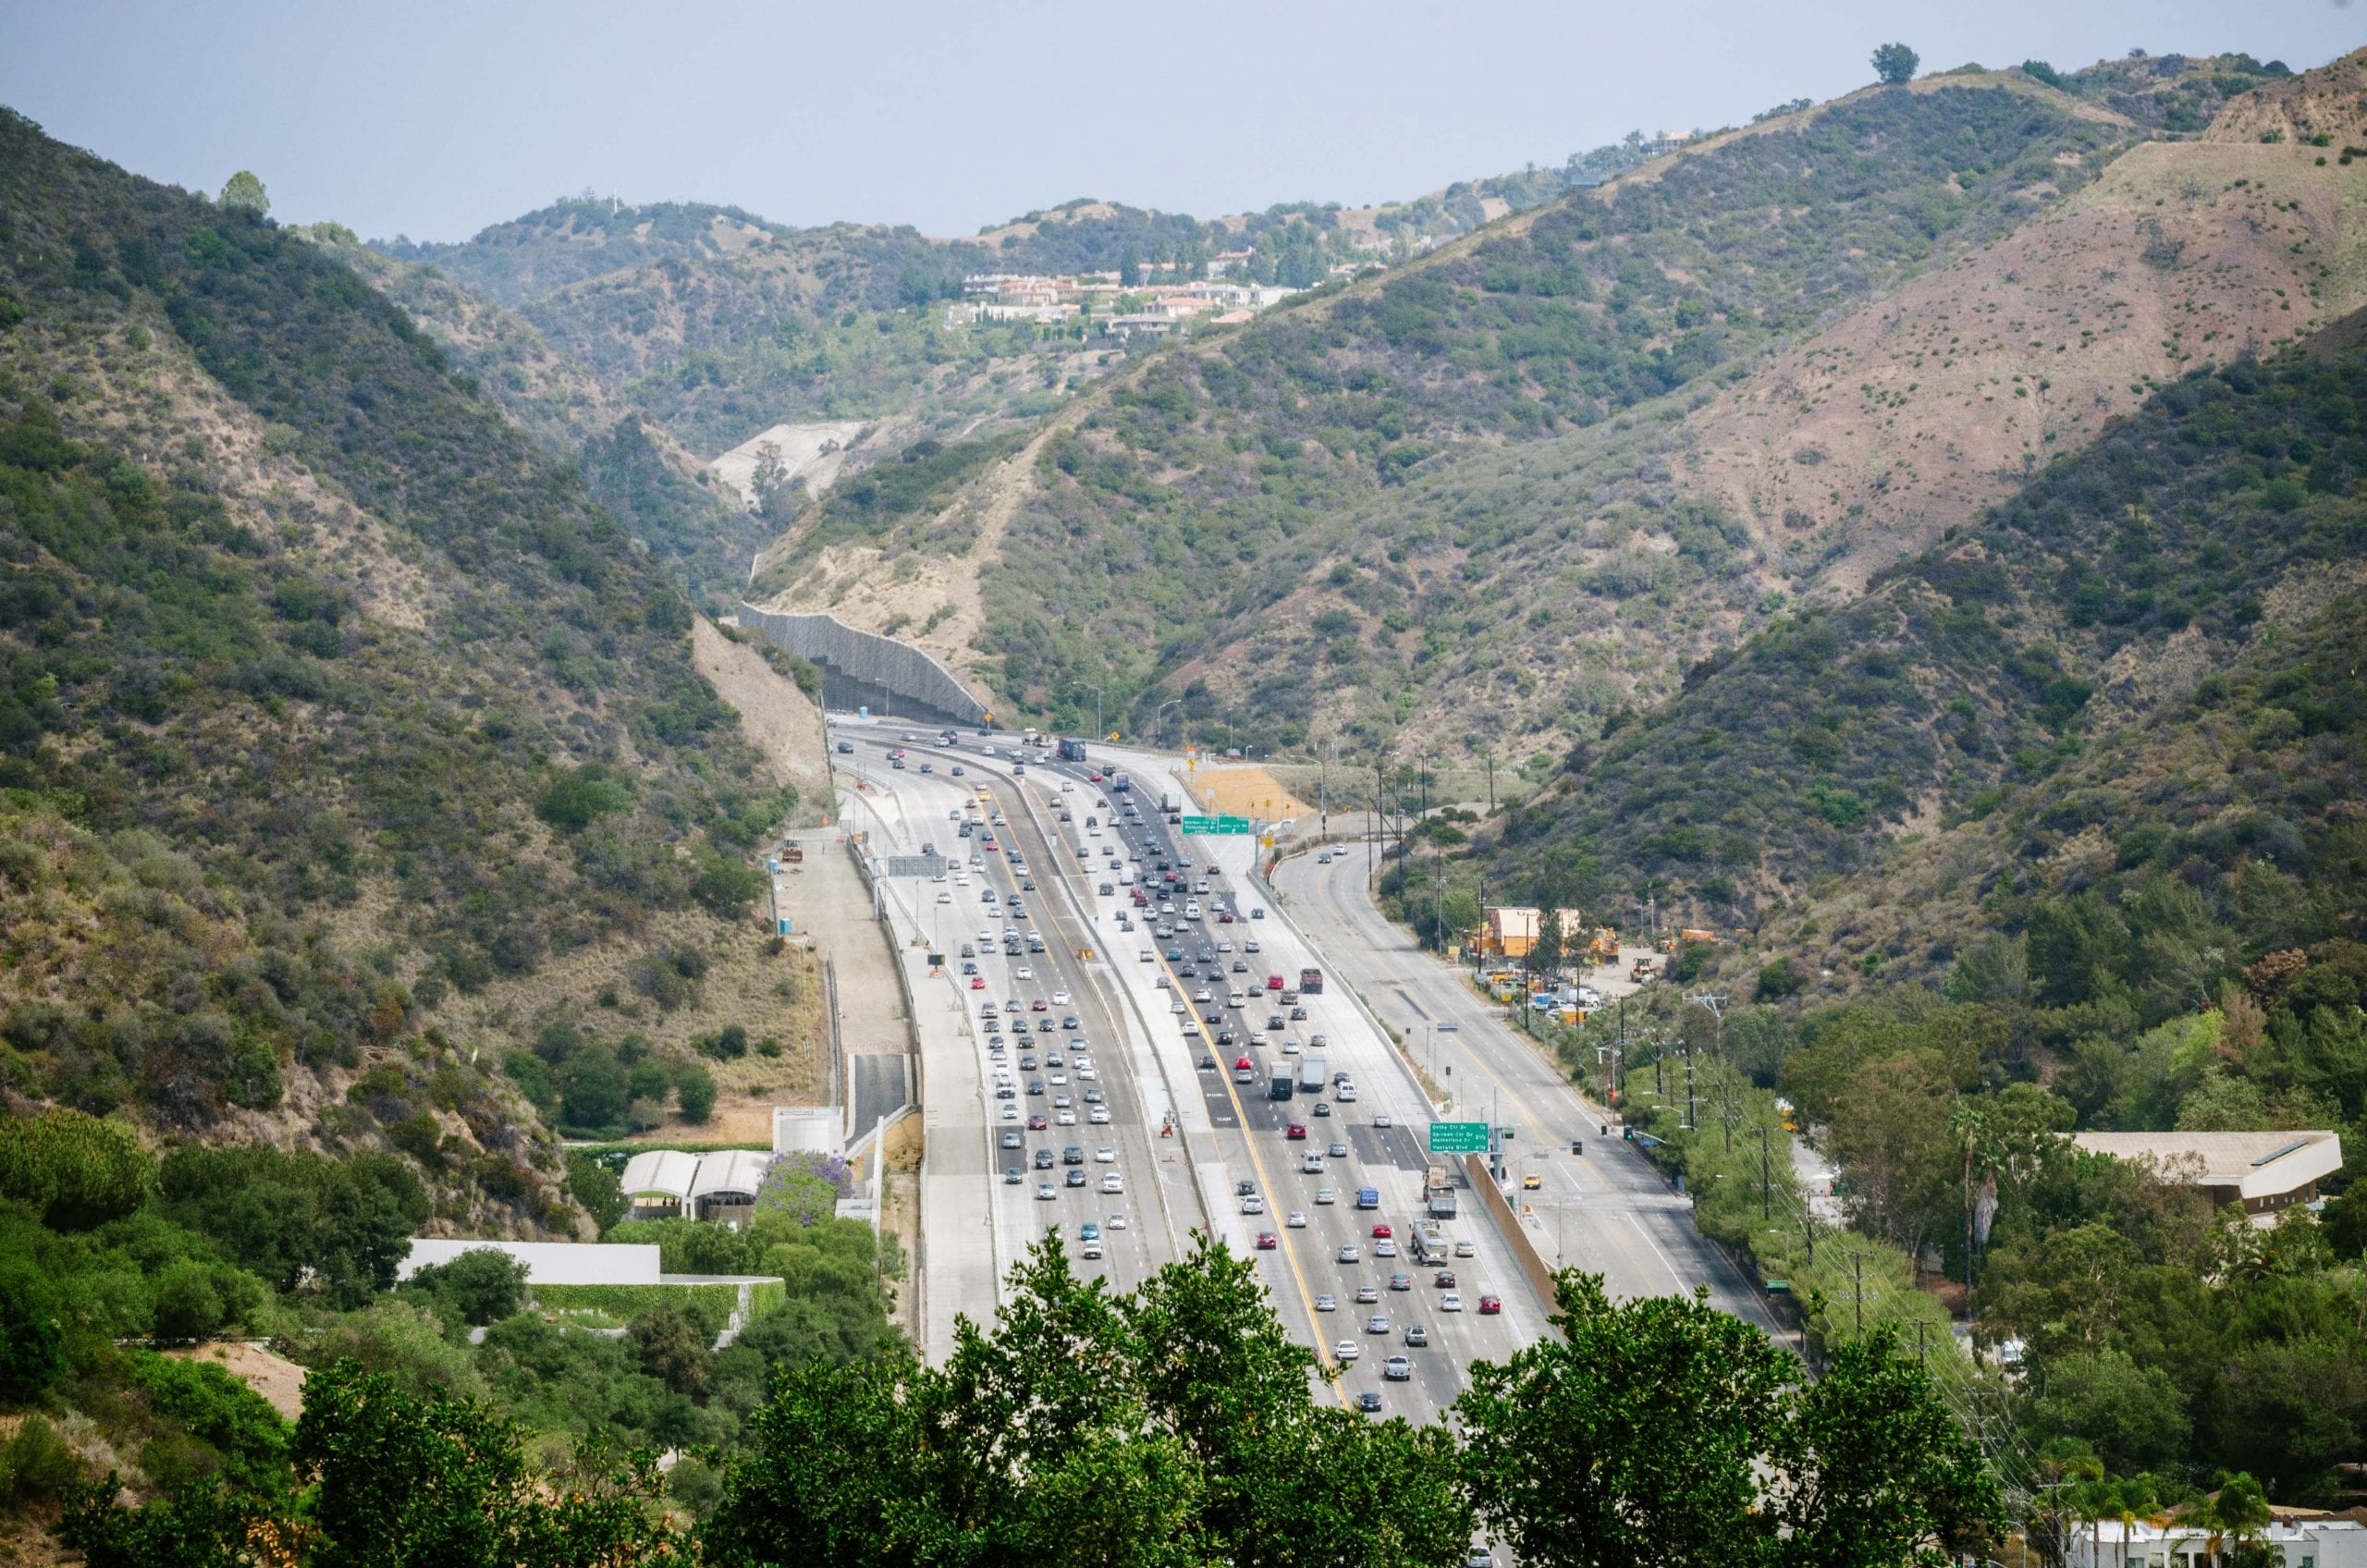 Looking north from the Getty with the new HOV lane on the right. Photo by Steve Hymon/Metro.